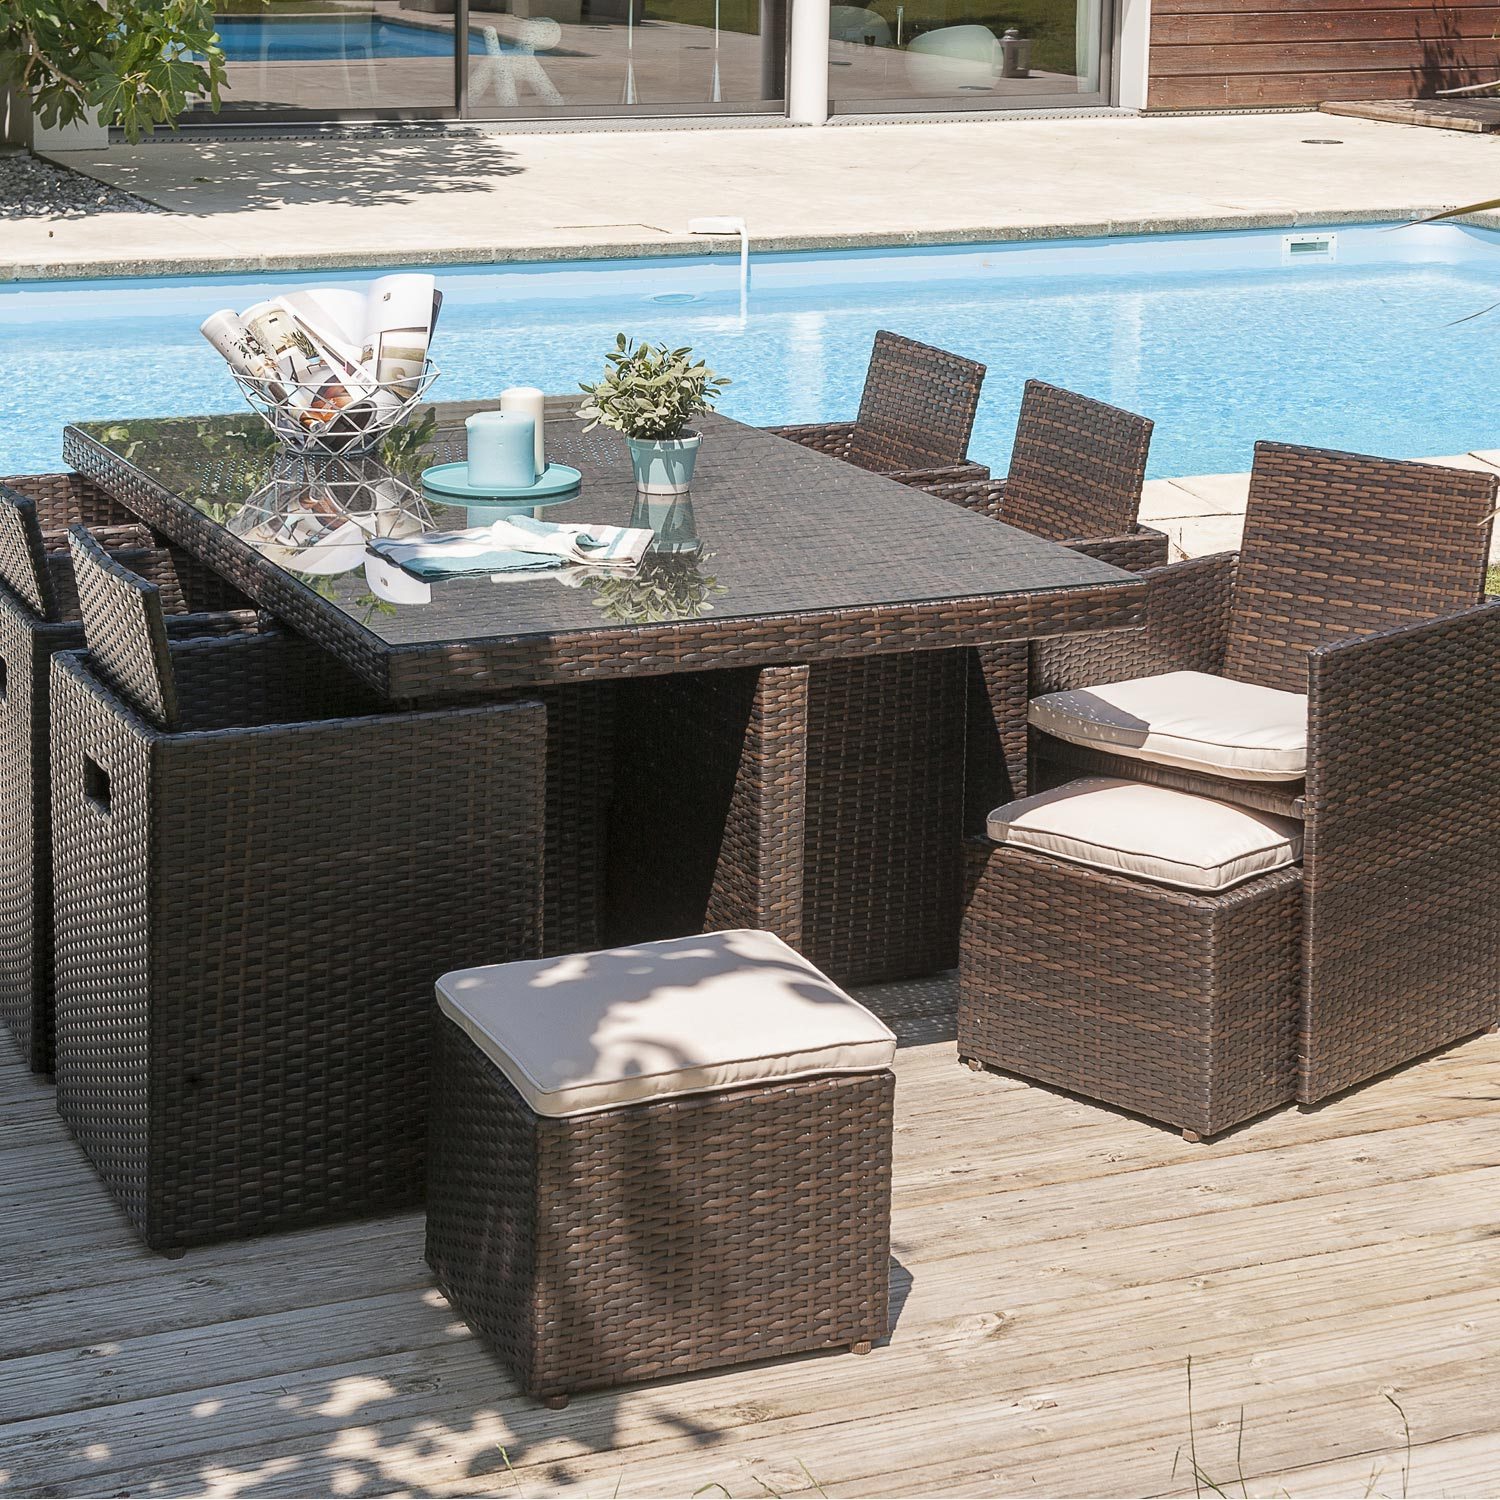 salon de jardin r sine tress e chocolat table 6 fauteuils 2 poufs leroy merlin. Black Bedroom Furniture Sets. Home Design Ideas